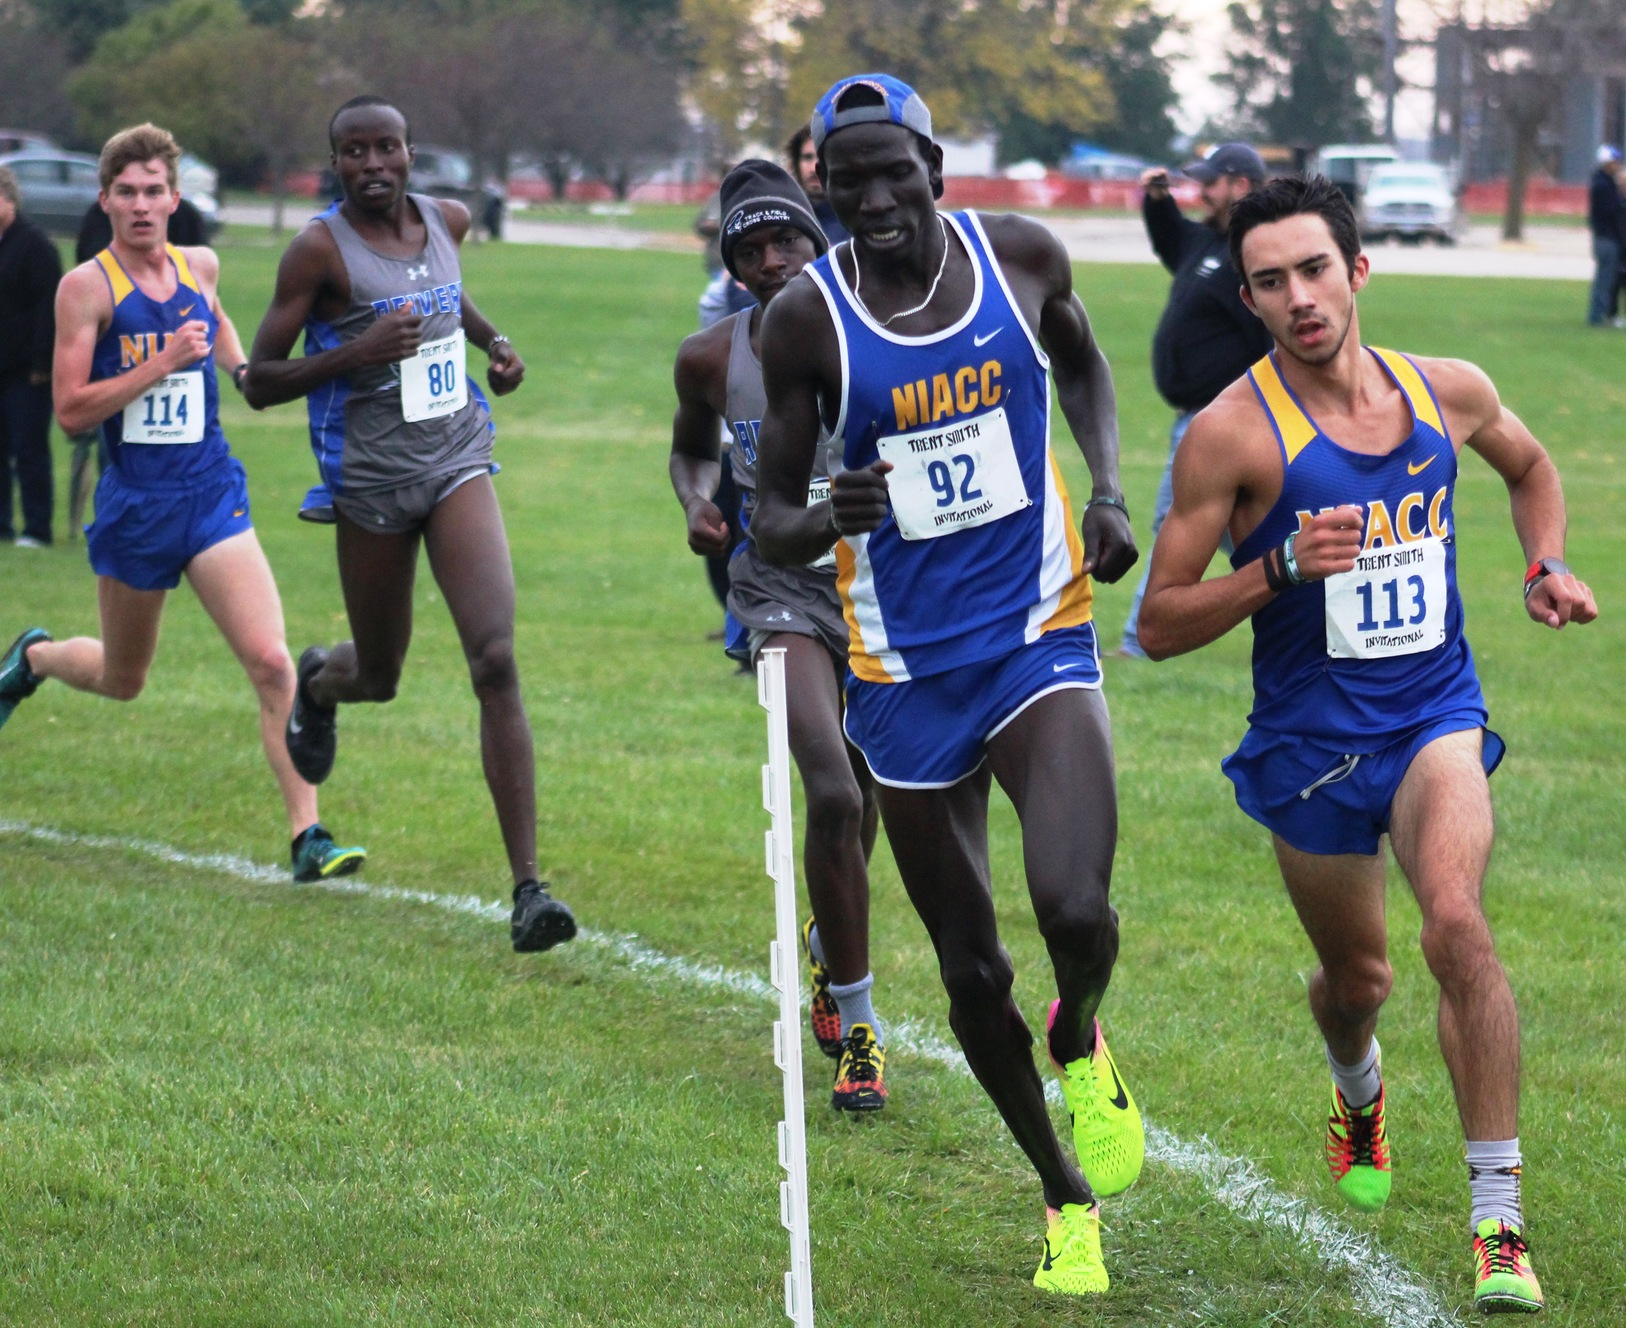 NIACC's Brian Jacques (right) and Wal Khat, who was running for the NIACC alumni team) share the lead at the Trent Smith Invite on Friday.